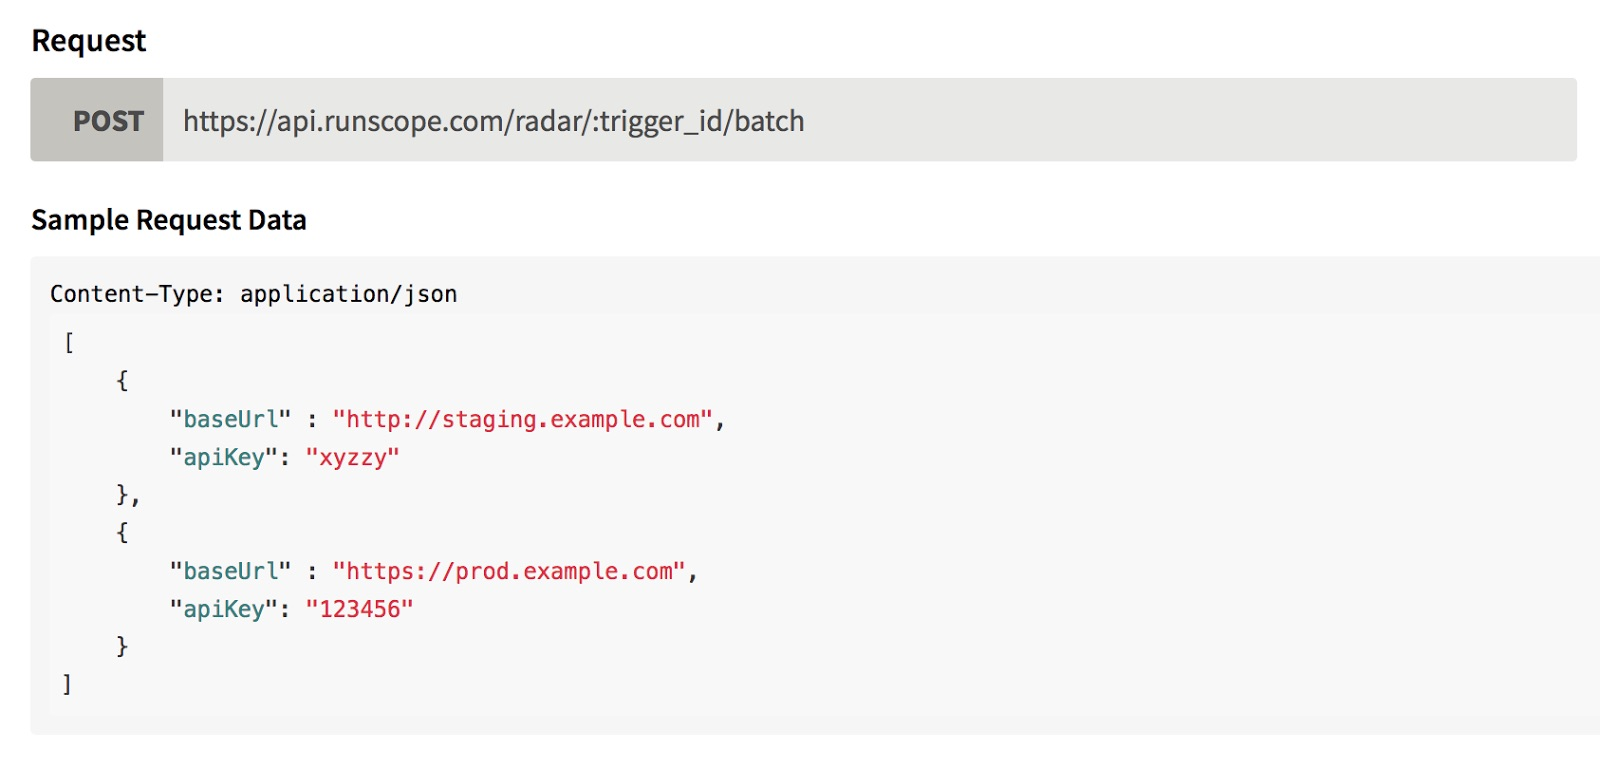 The Runscope documentation showing how to make a request to the Batch Trigger URL, and a sample JSON request data.